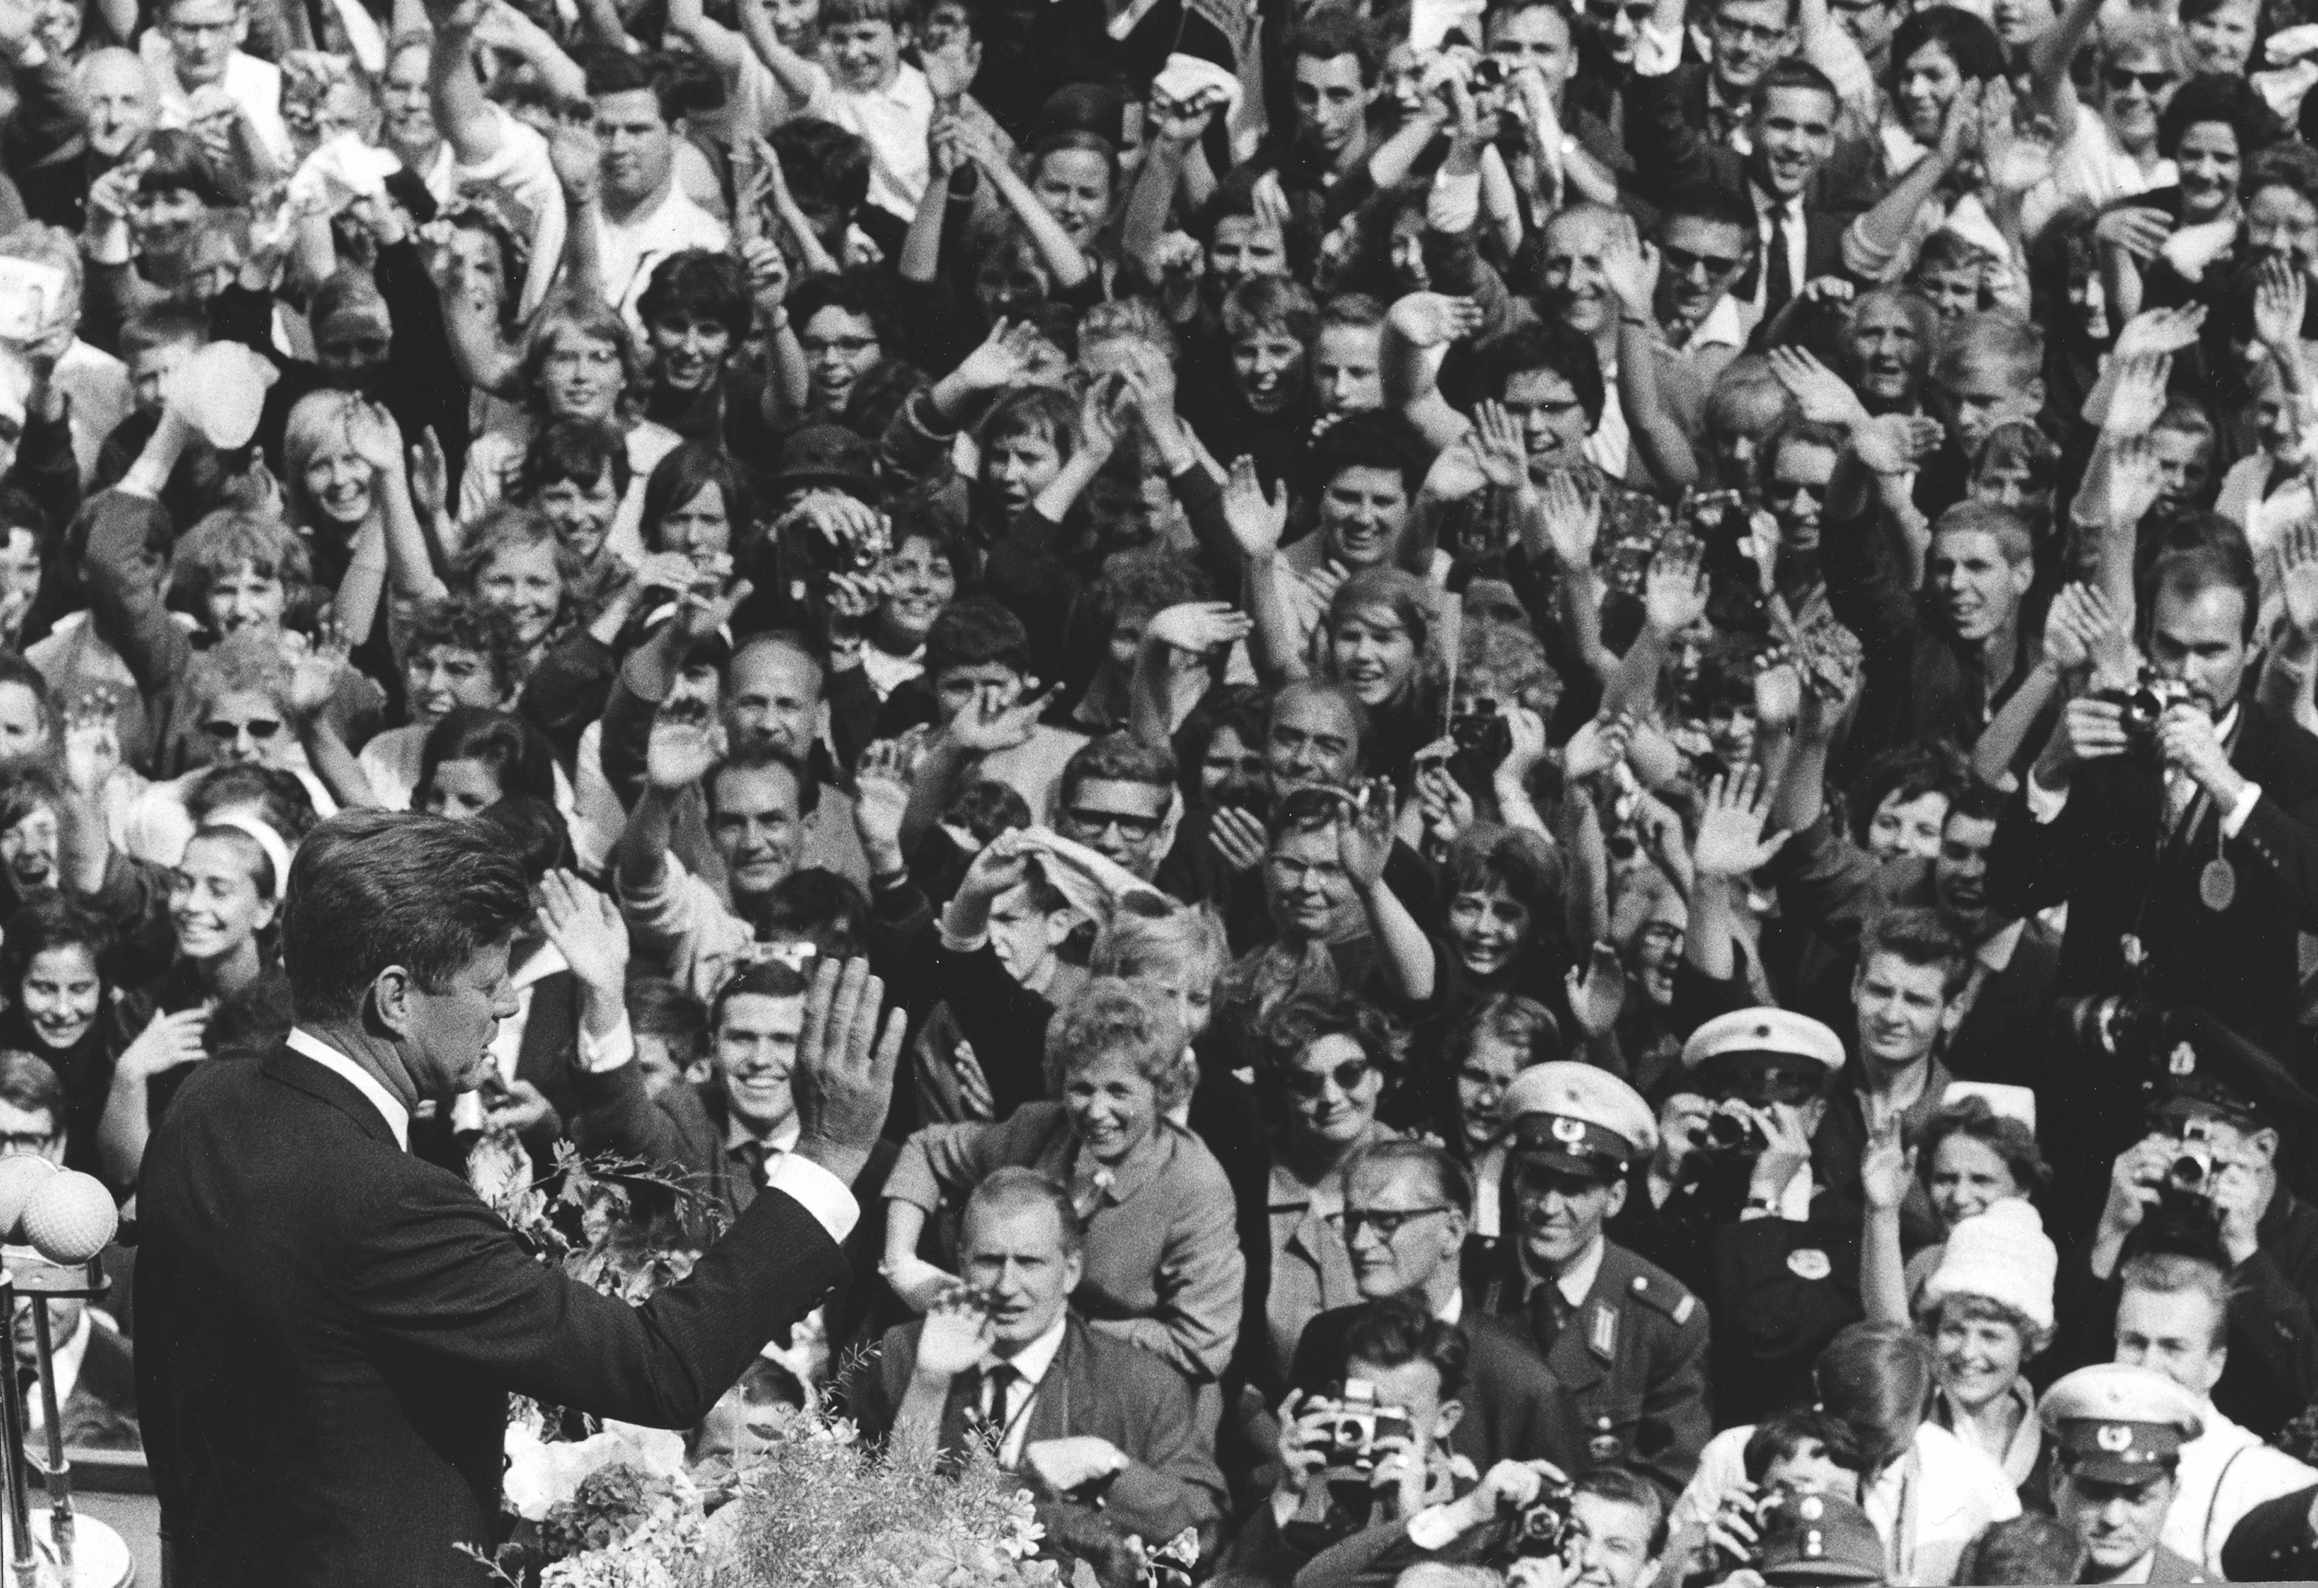 JFK address 120,000 West Germans in Berlin in June 1963 © Getty Images